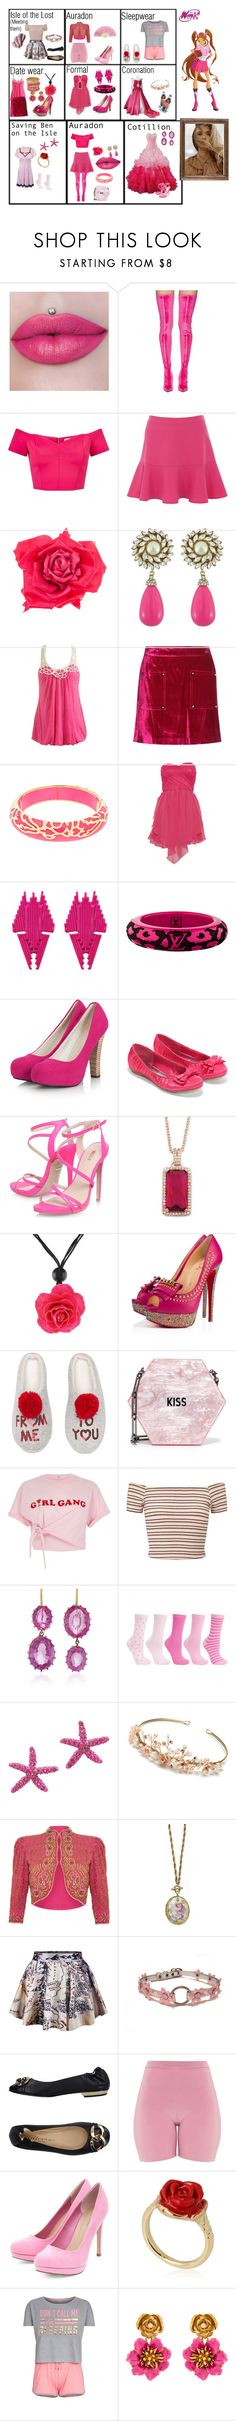 """""""Floria"""" by traceymarh ❤ liked on Polyvore featuring Balenciaga, Miss Selfridge, Johnny Loves Rosie, Wet Seal, Opening Ceremony, Andrew Hamilton Crawford, Amrita Singh, Rare London, Louis Vuitton and Pieces"""